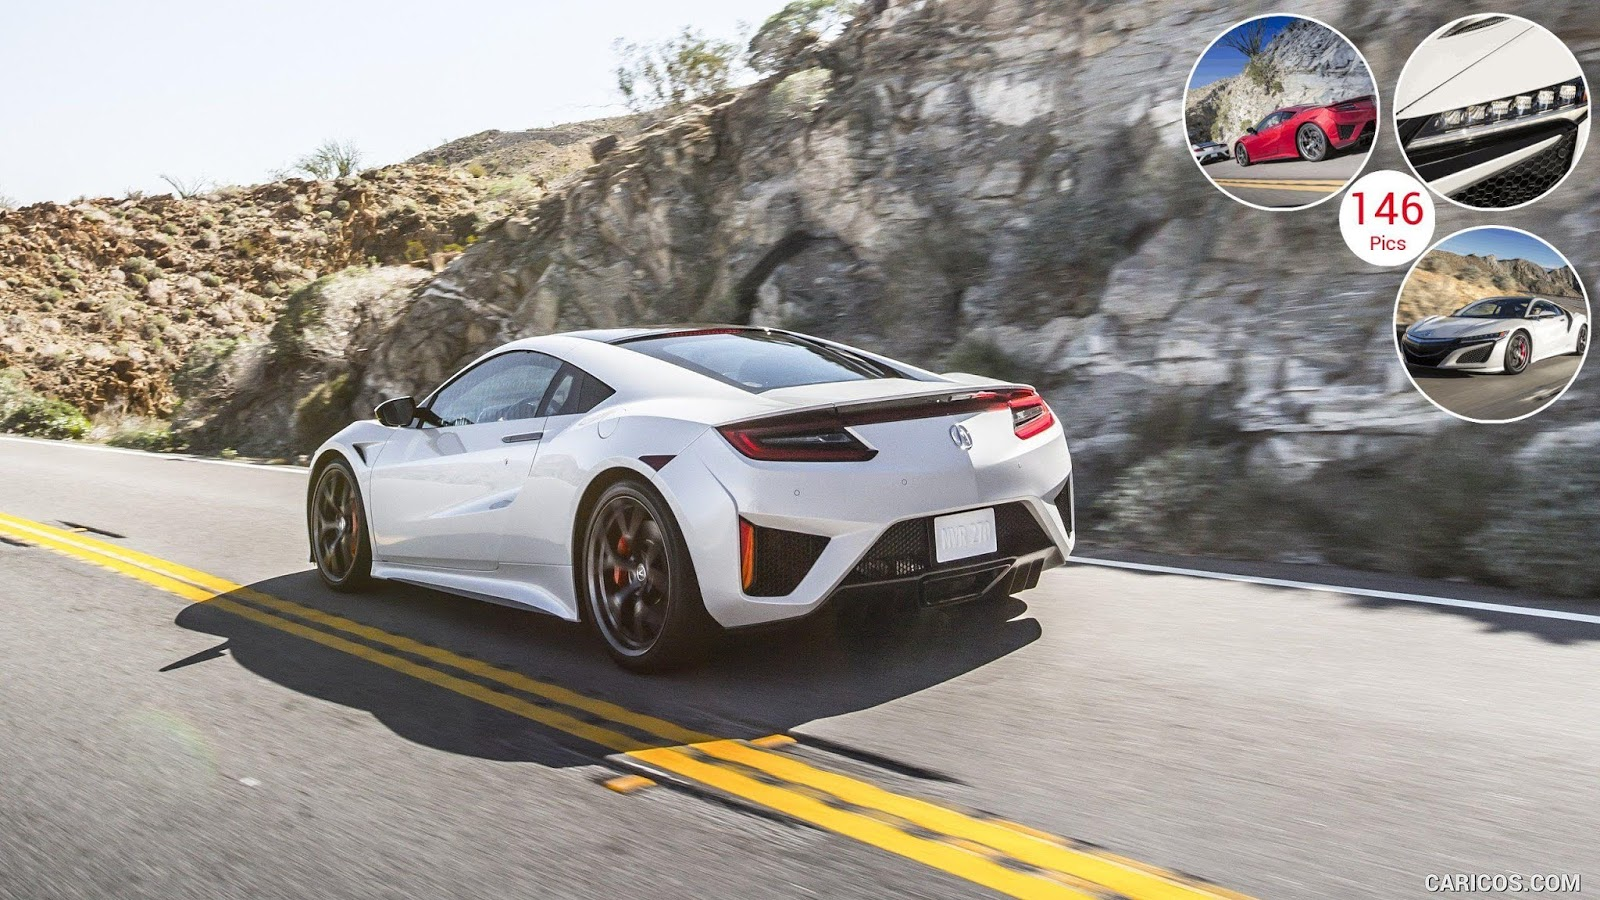 2017 Acura NSX White HD car image